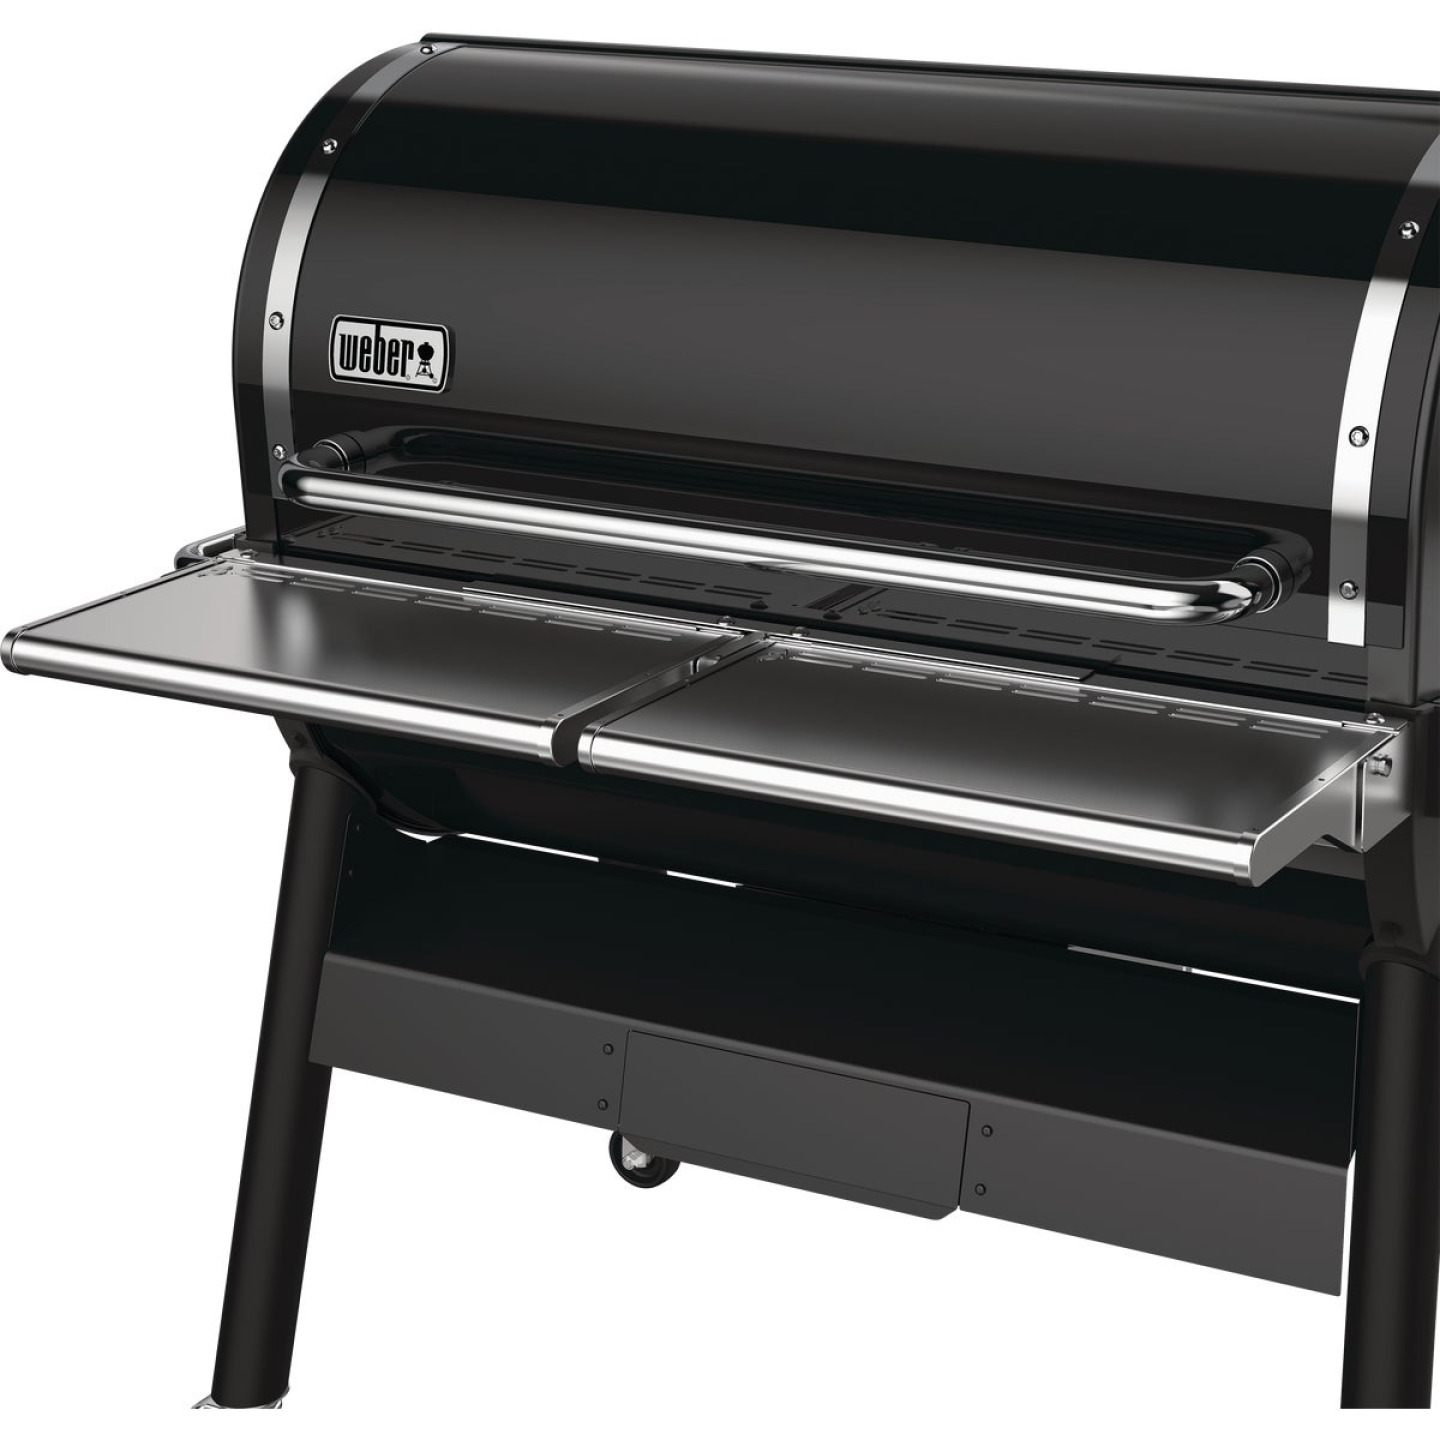 Weber SmokeFire EX6 Front Folding 21.66 In W. x 5.04 In. L. Stainless Steel Grill Shelf Image 2